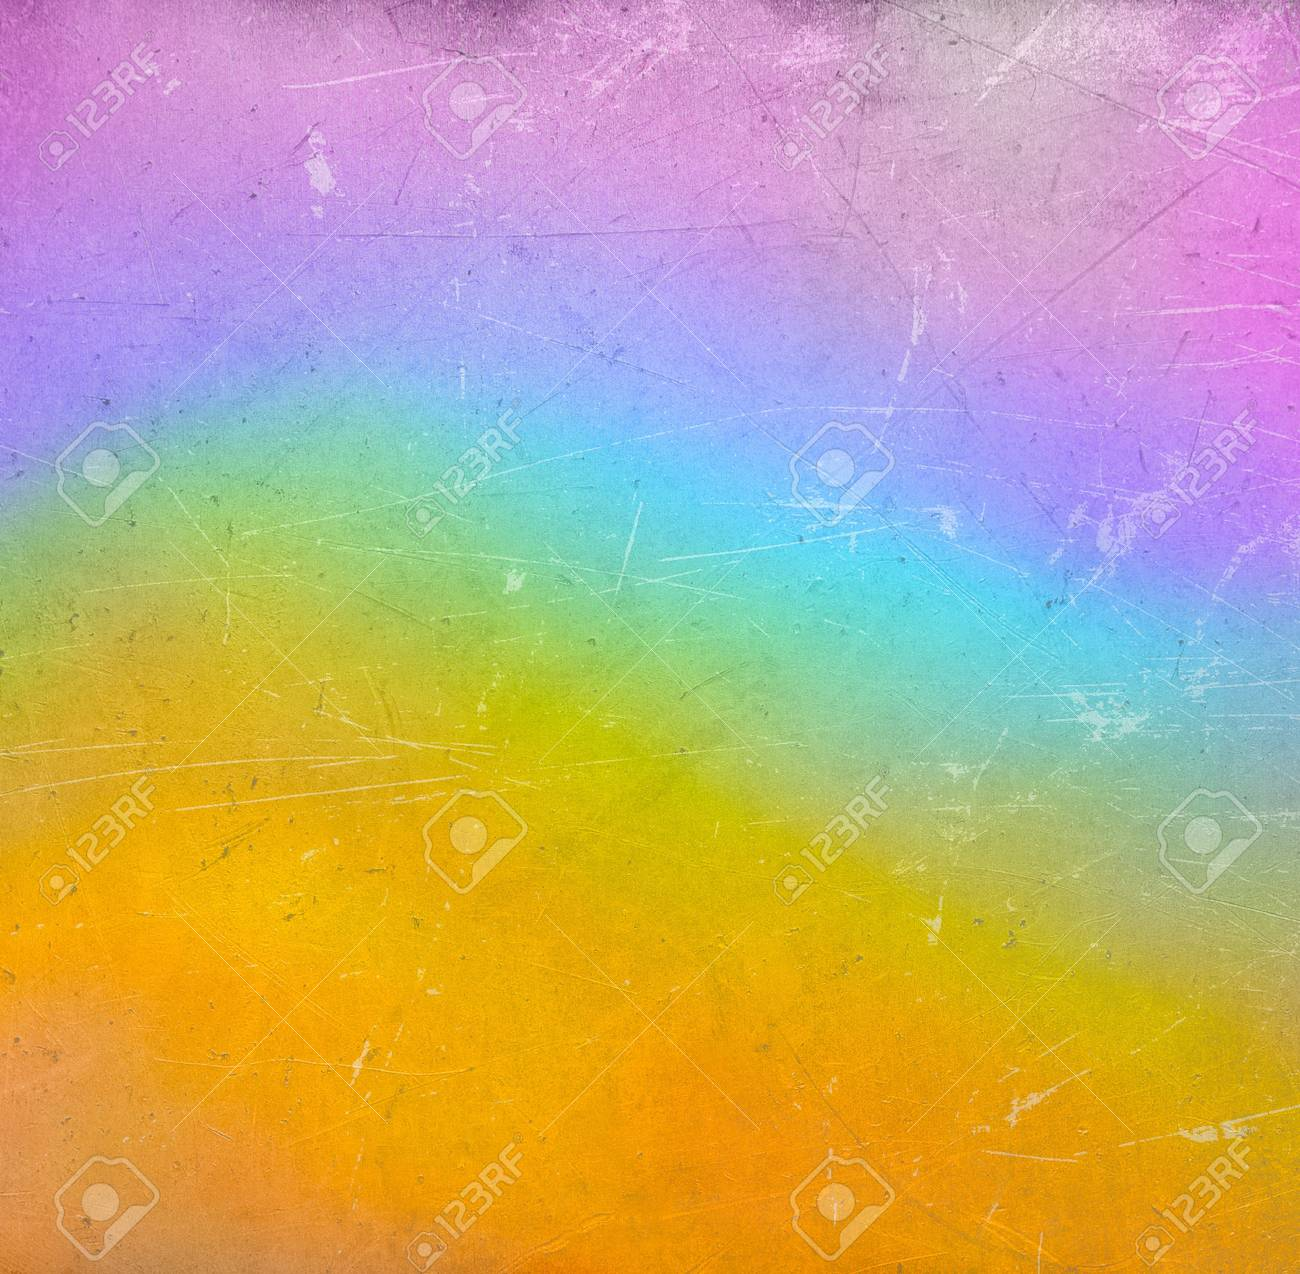 Colorful scratched vintage background Stock Photo - 20959829